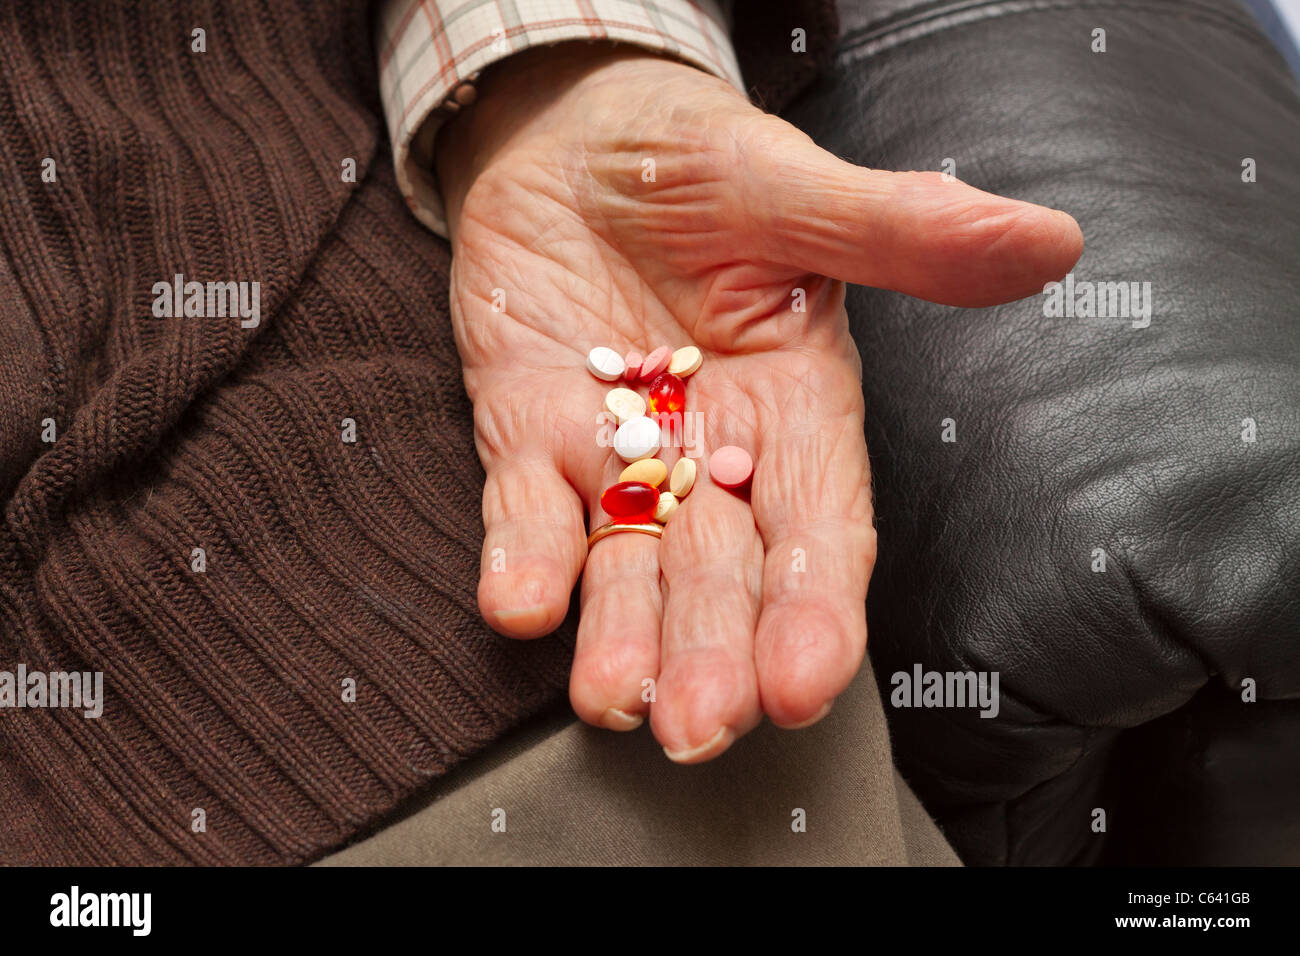 An elderly man holds out his hand with an assortment of pills - Stock Image